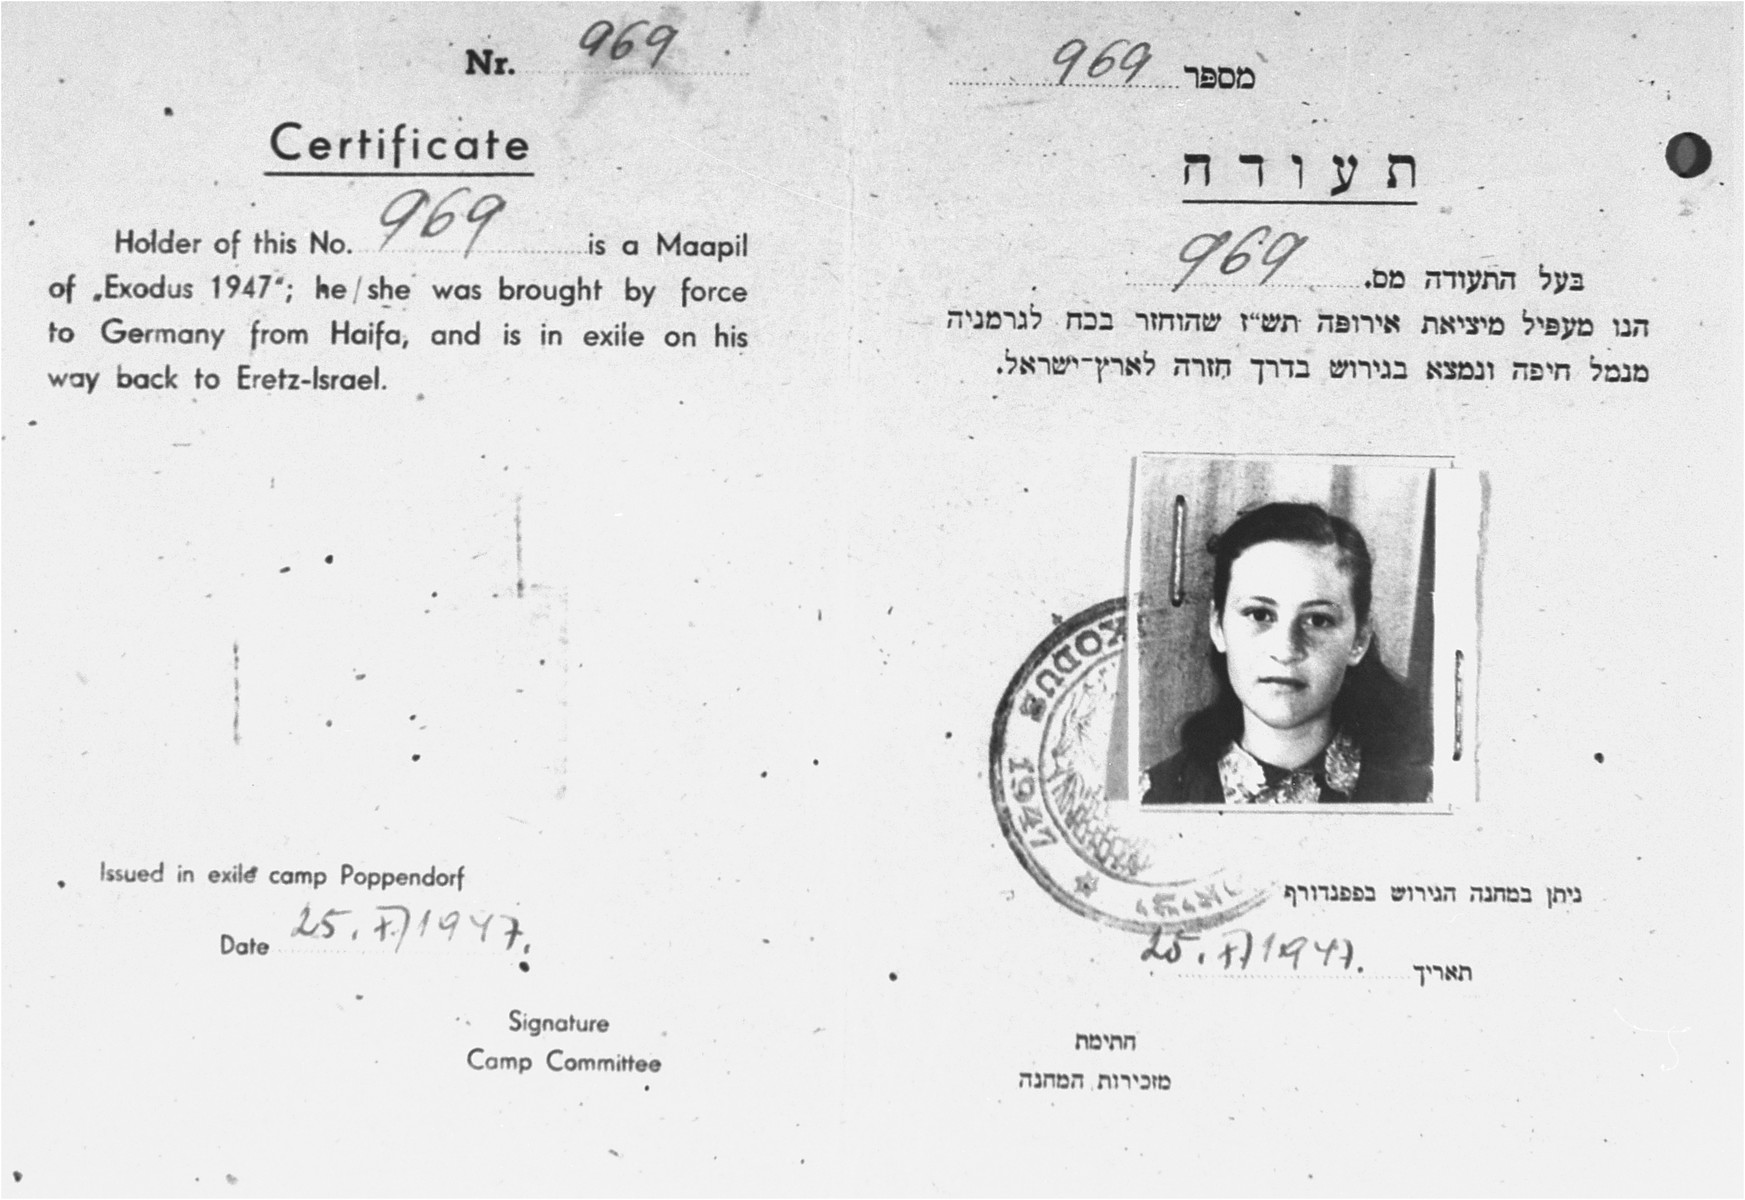 """DP identity card, issued by the Jewish administration of the Poppendorf displaced persons camp, certifying that Cilia Rudashevsky was an illegal immigrant aboard the Exodus 1947, who was brought back to Germany against her will, and who """"is in exile on [her] way back to Eretz-Israel""""."""